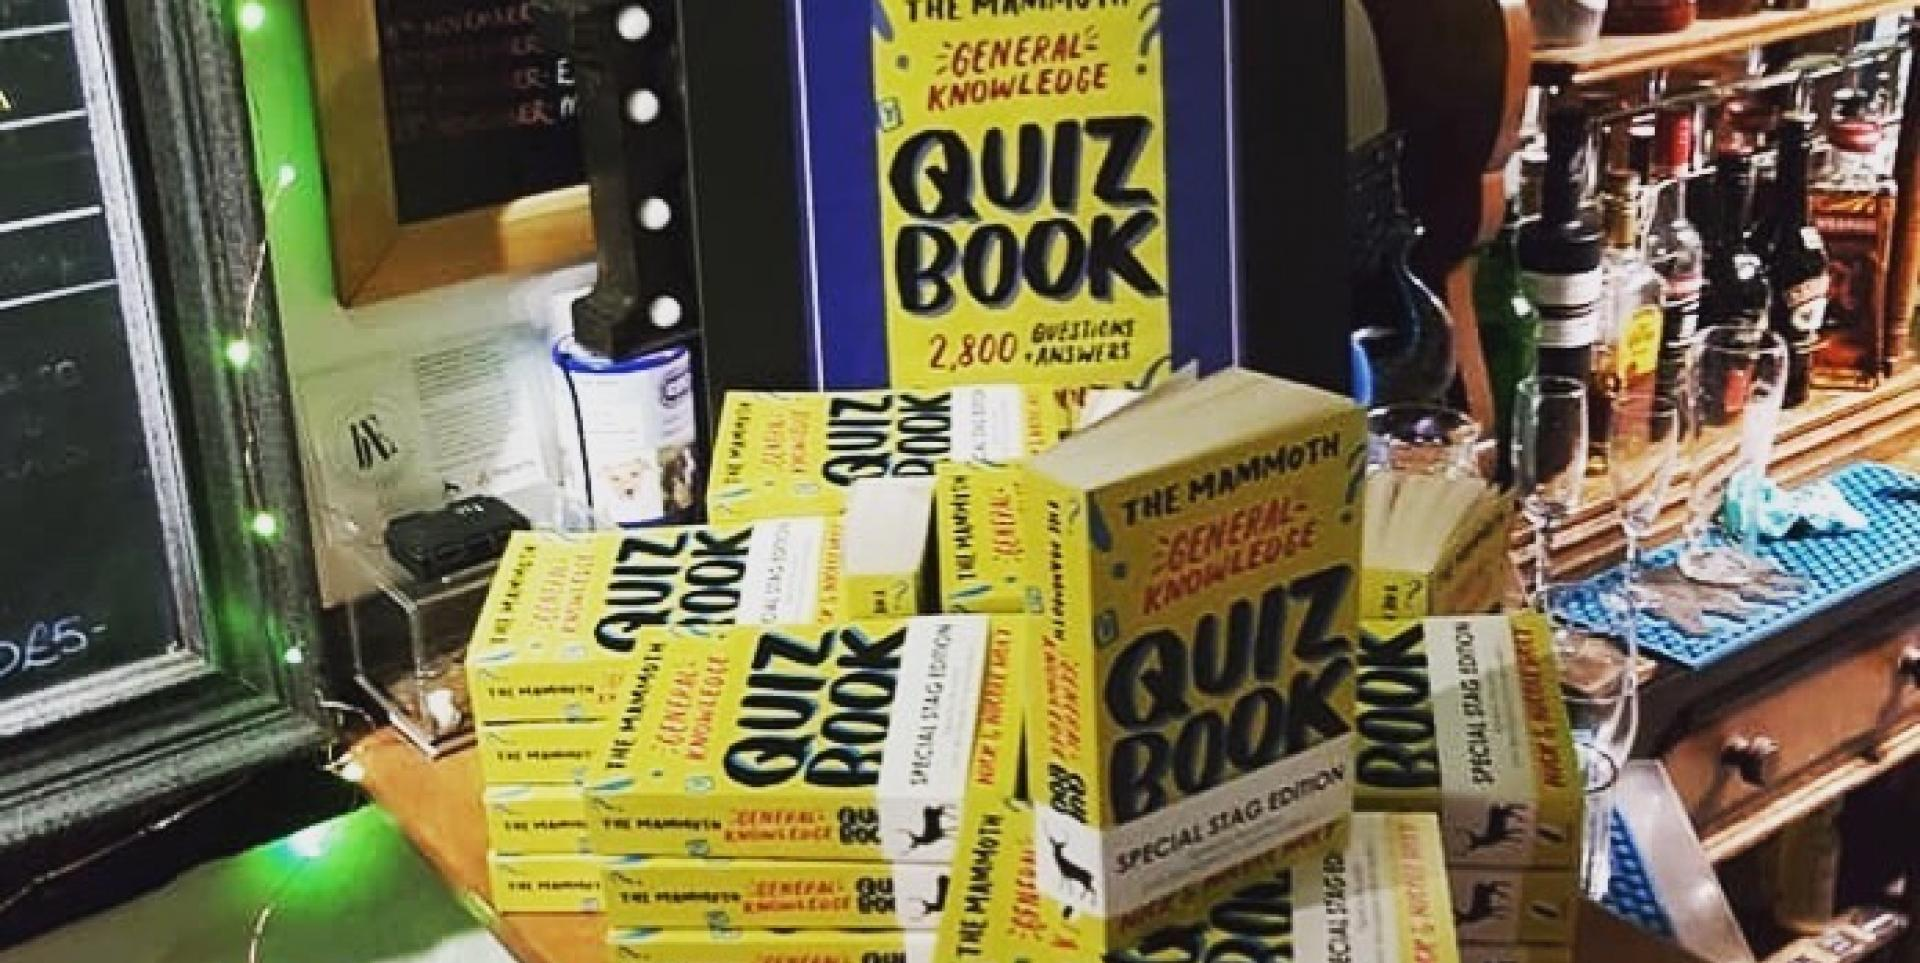 quiz_book_display1.jpg